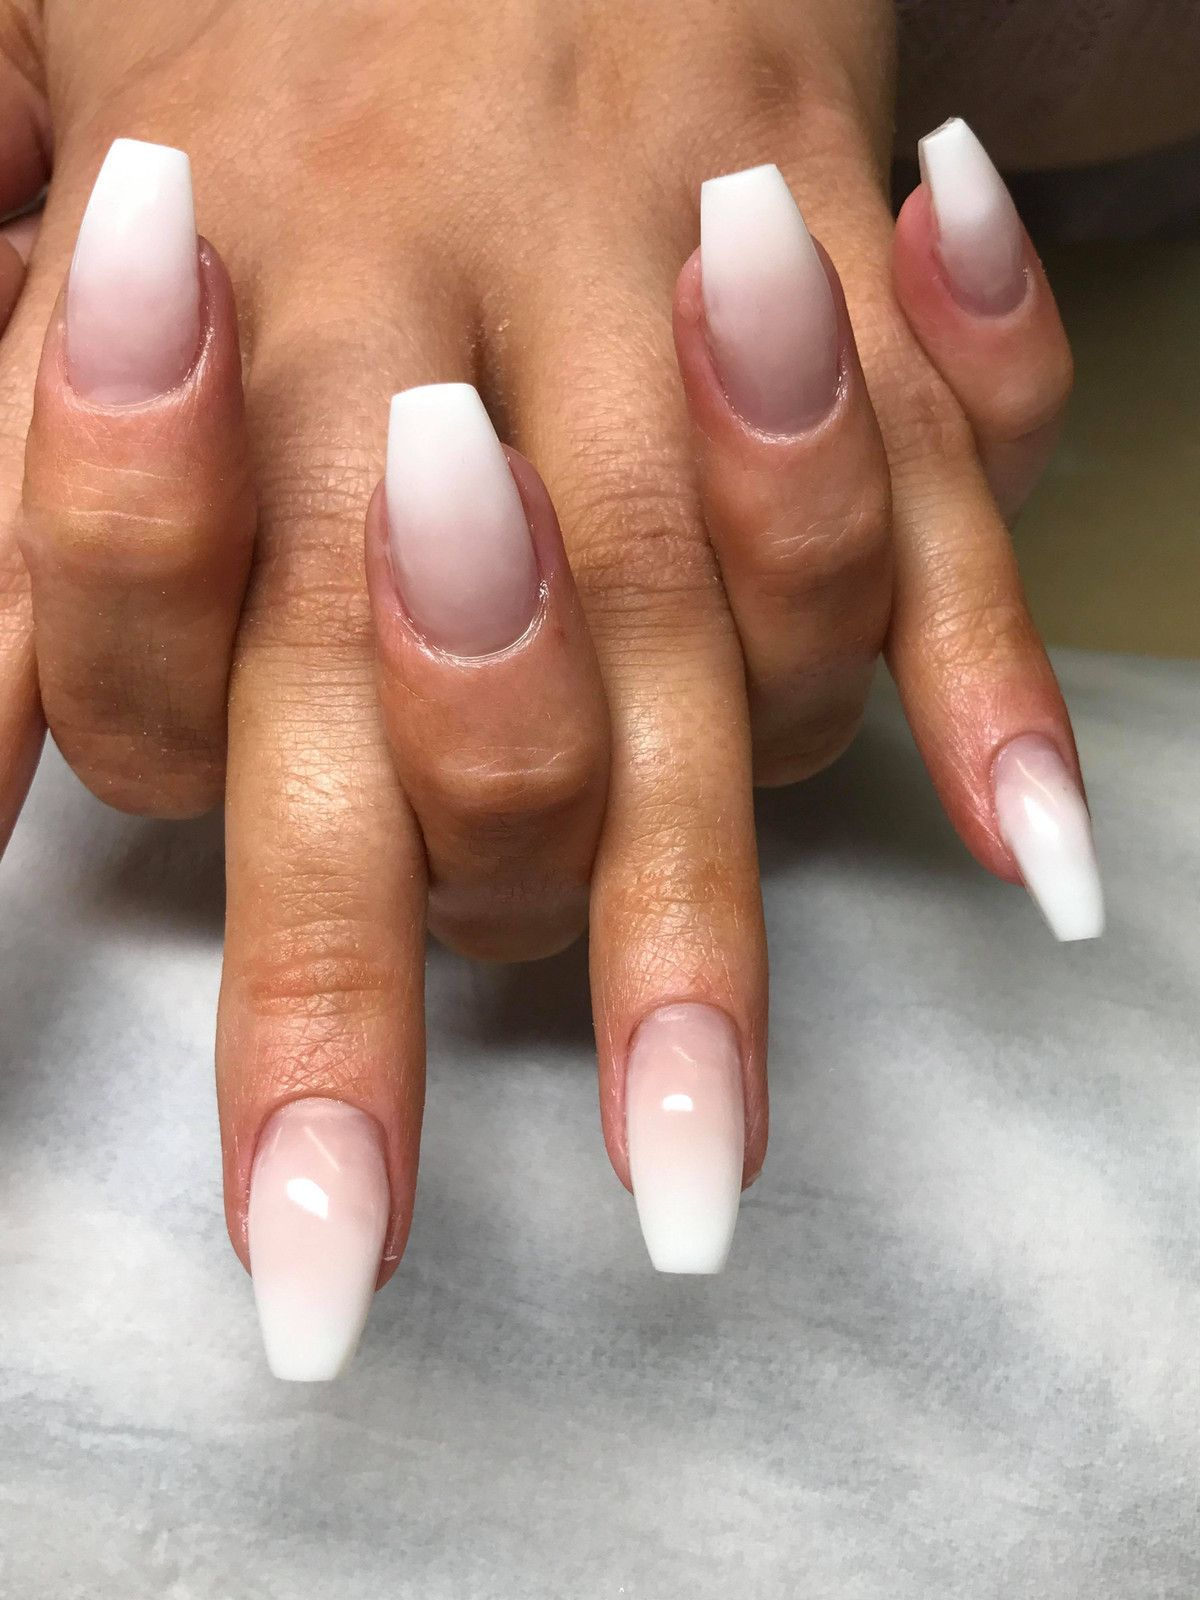 French Ombre Nails With Gold Glitter Baby Boomer Coffin Nails Ombre Nails Acrylic Nails Coffinnails Coffin Shape Nails Ombre Acrylic Nails Chic Nails